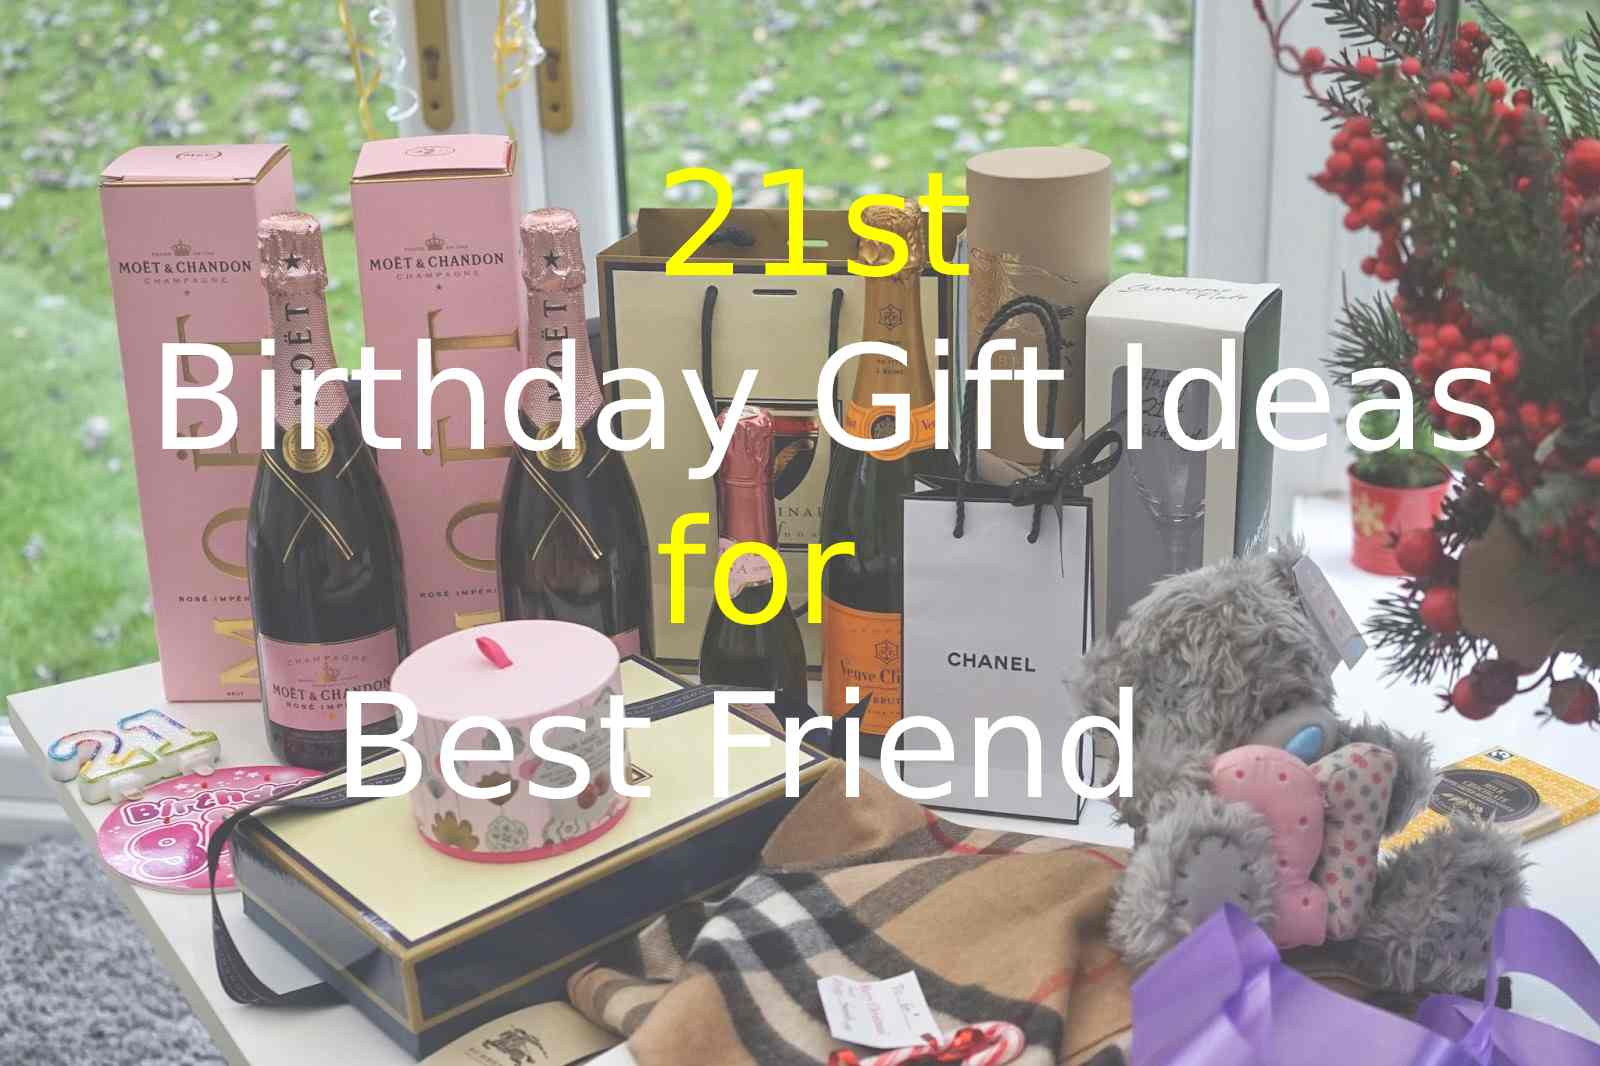 21st Birthday Gift Ideas For Best Friend Of 2021 Creative Gifts